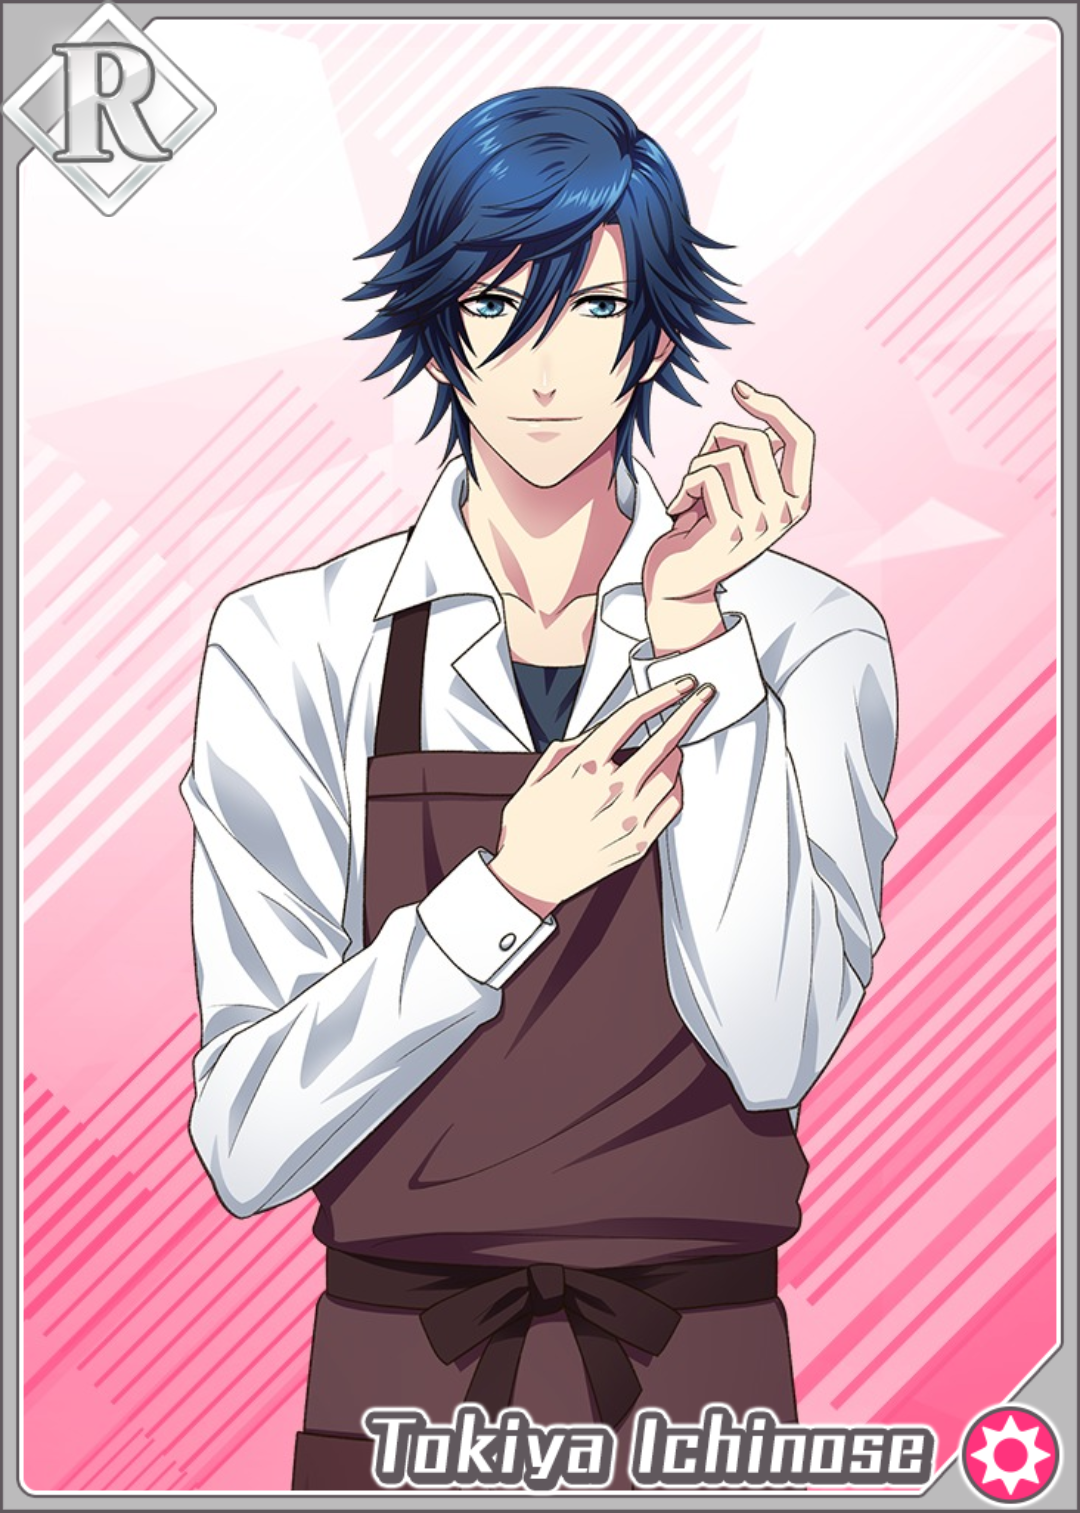 Tokiya Ichinose (Cooking Style / Kitchen Chic).